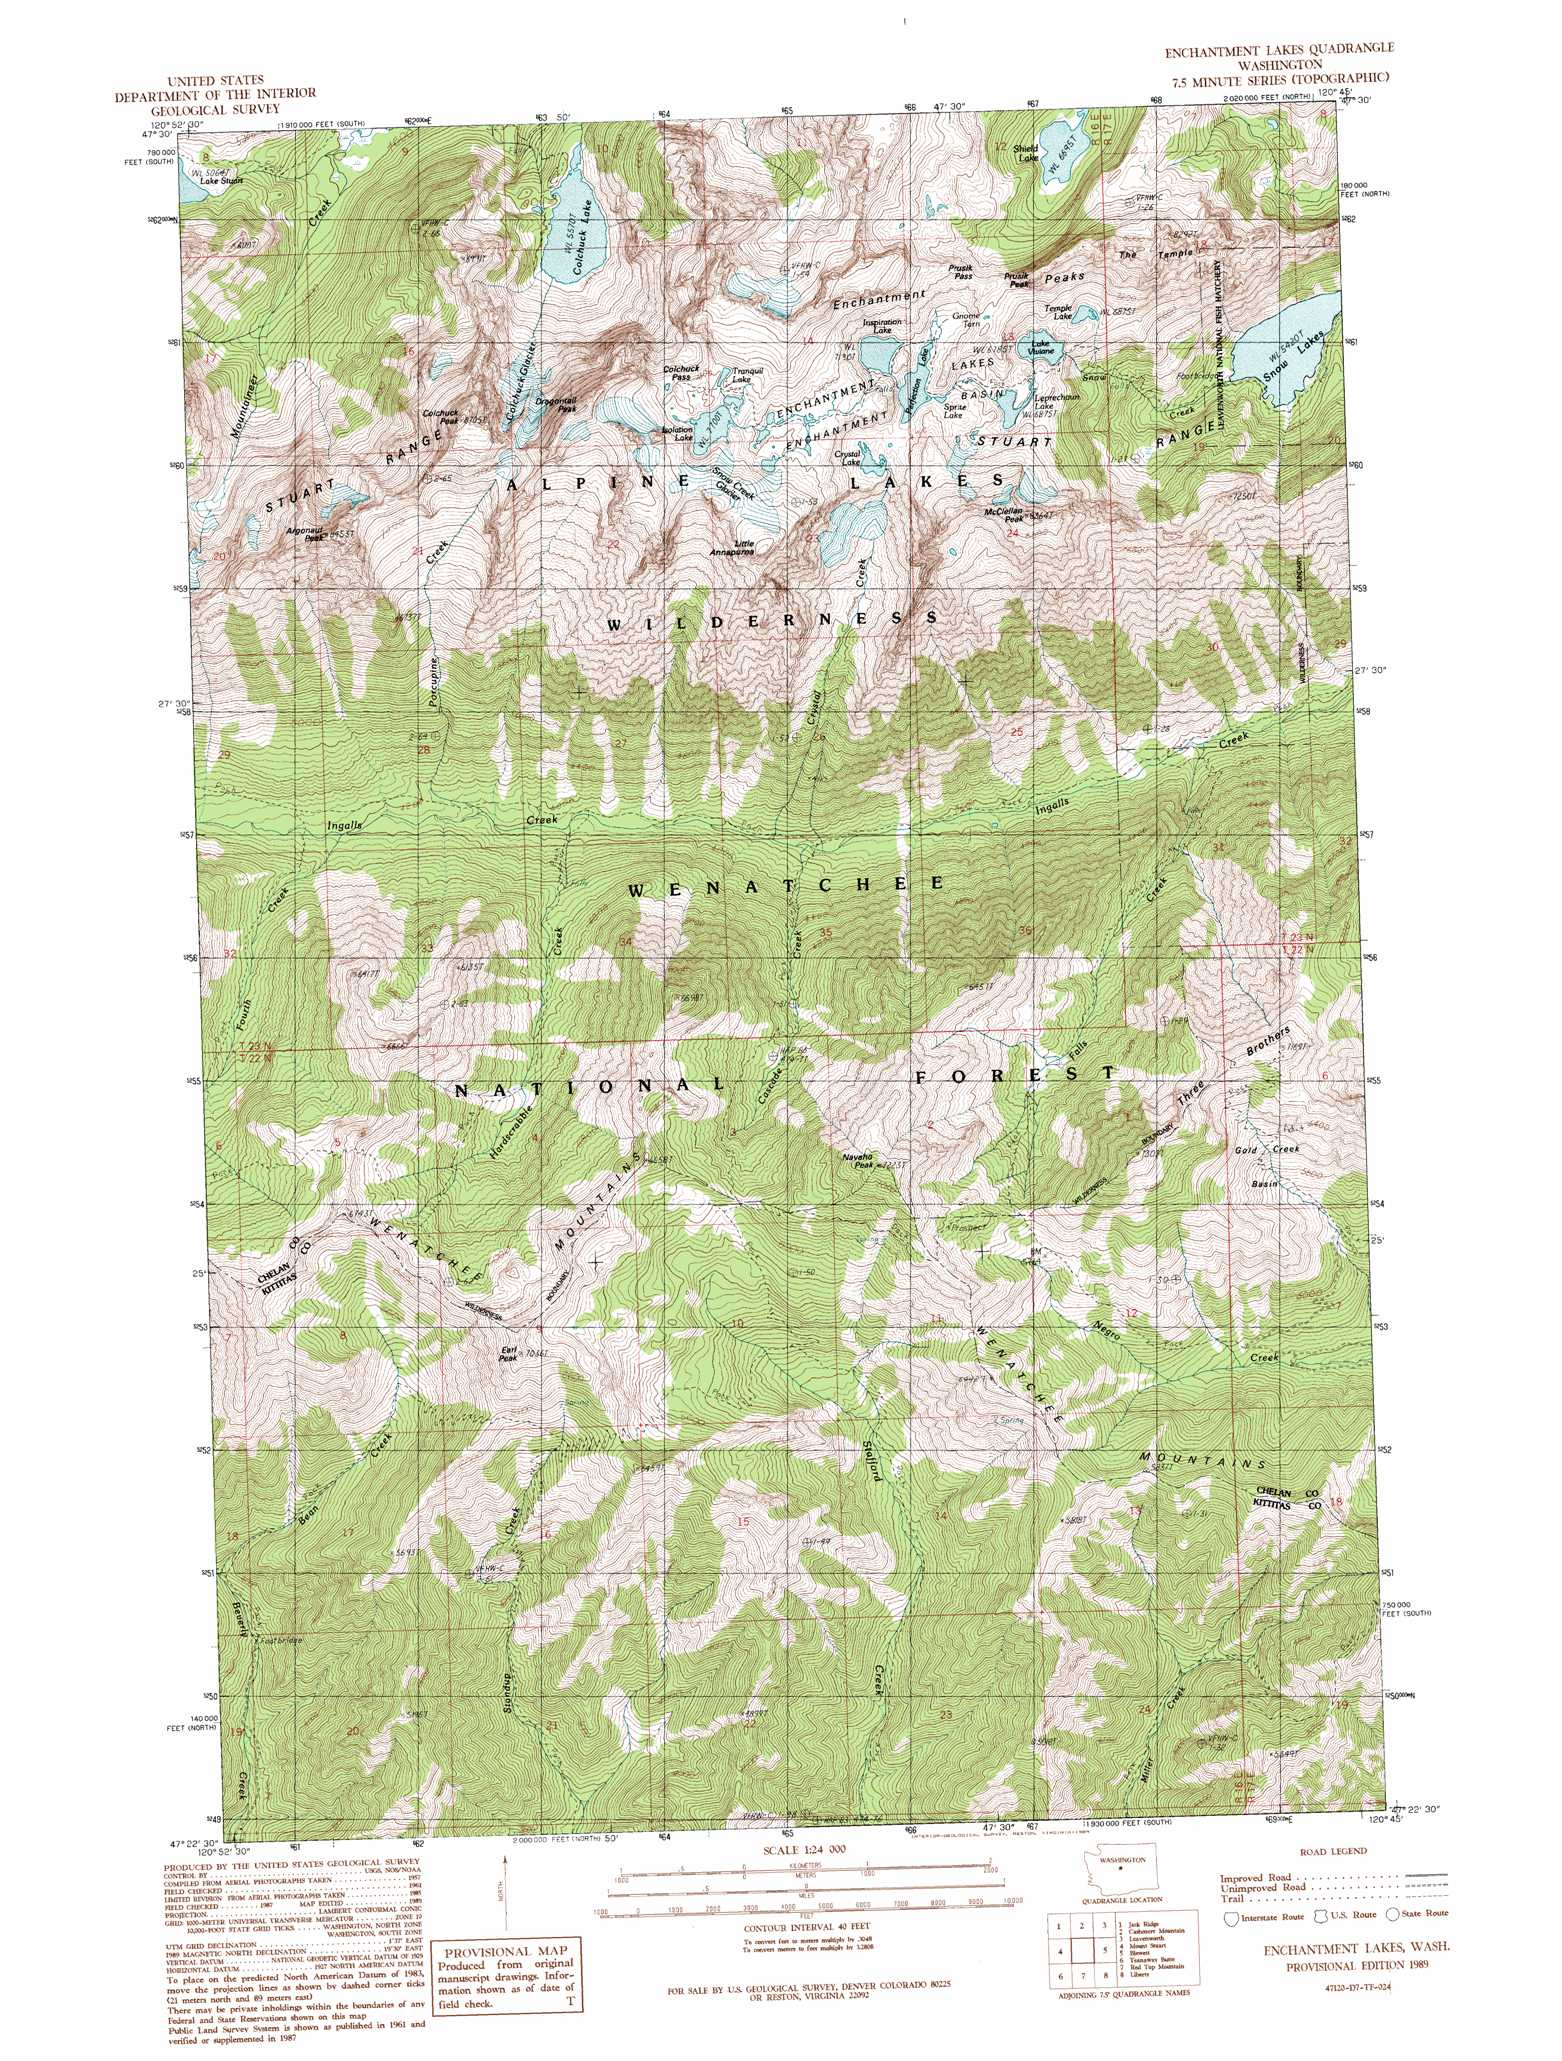 Enchantment Lakes topographic map, WA - USGS Topo Quad 47120d7